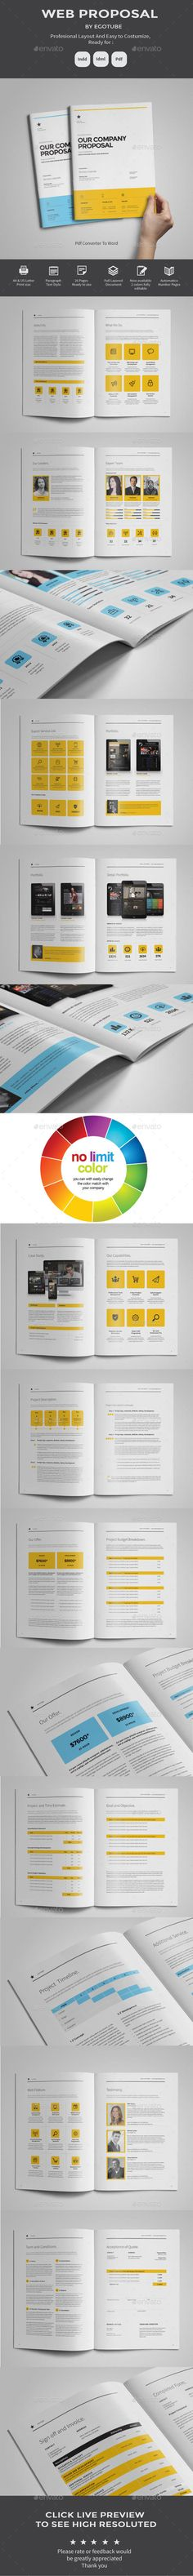 Indesign Business Proposal Template Template Pinterest - advertising proposal template